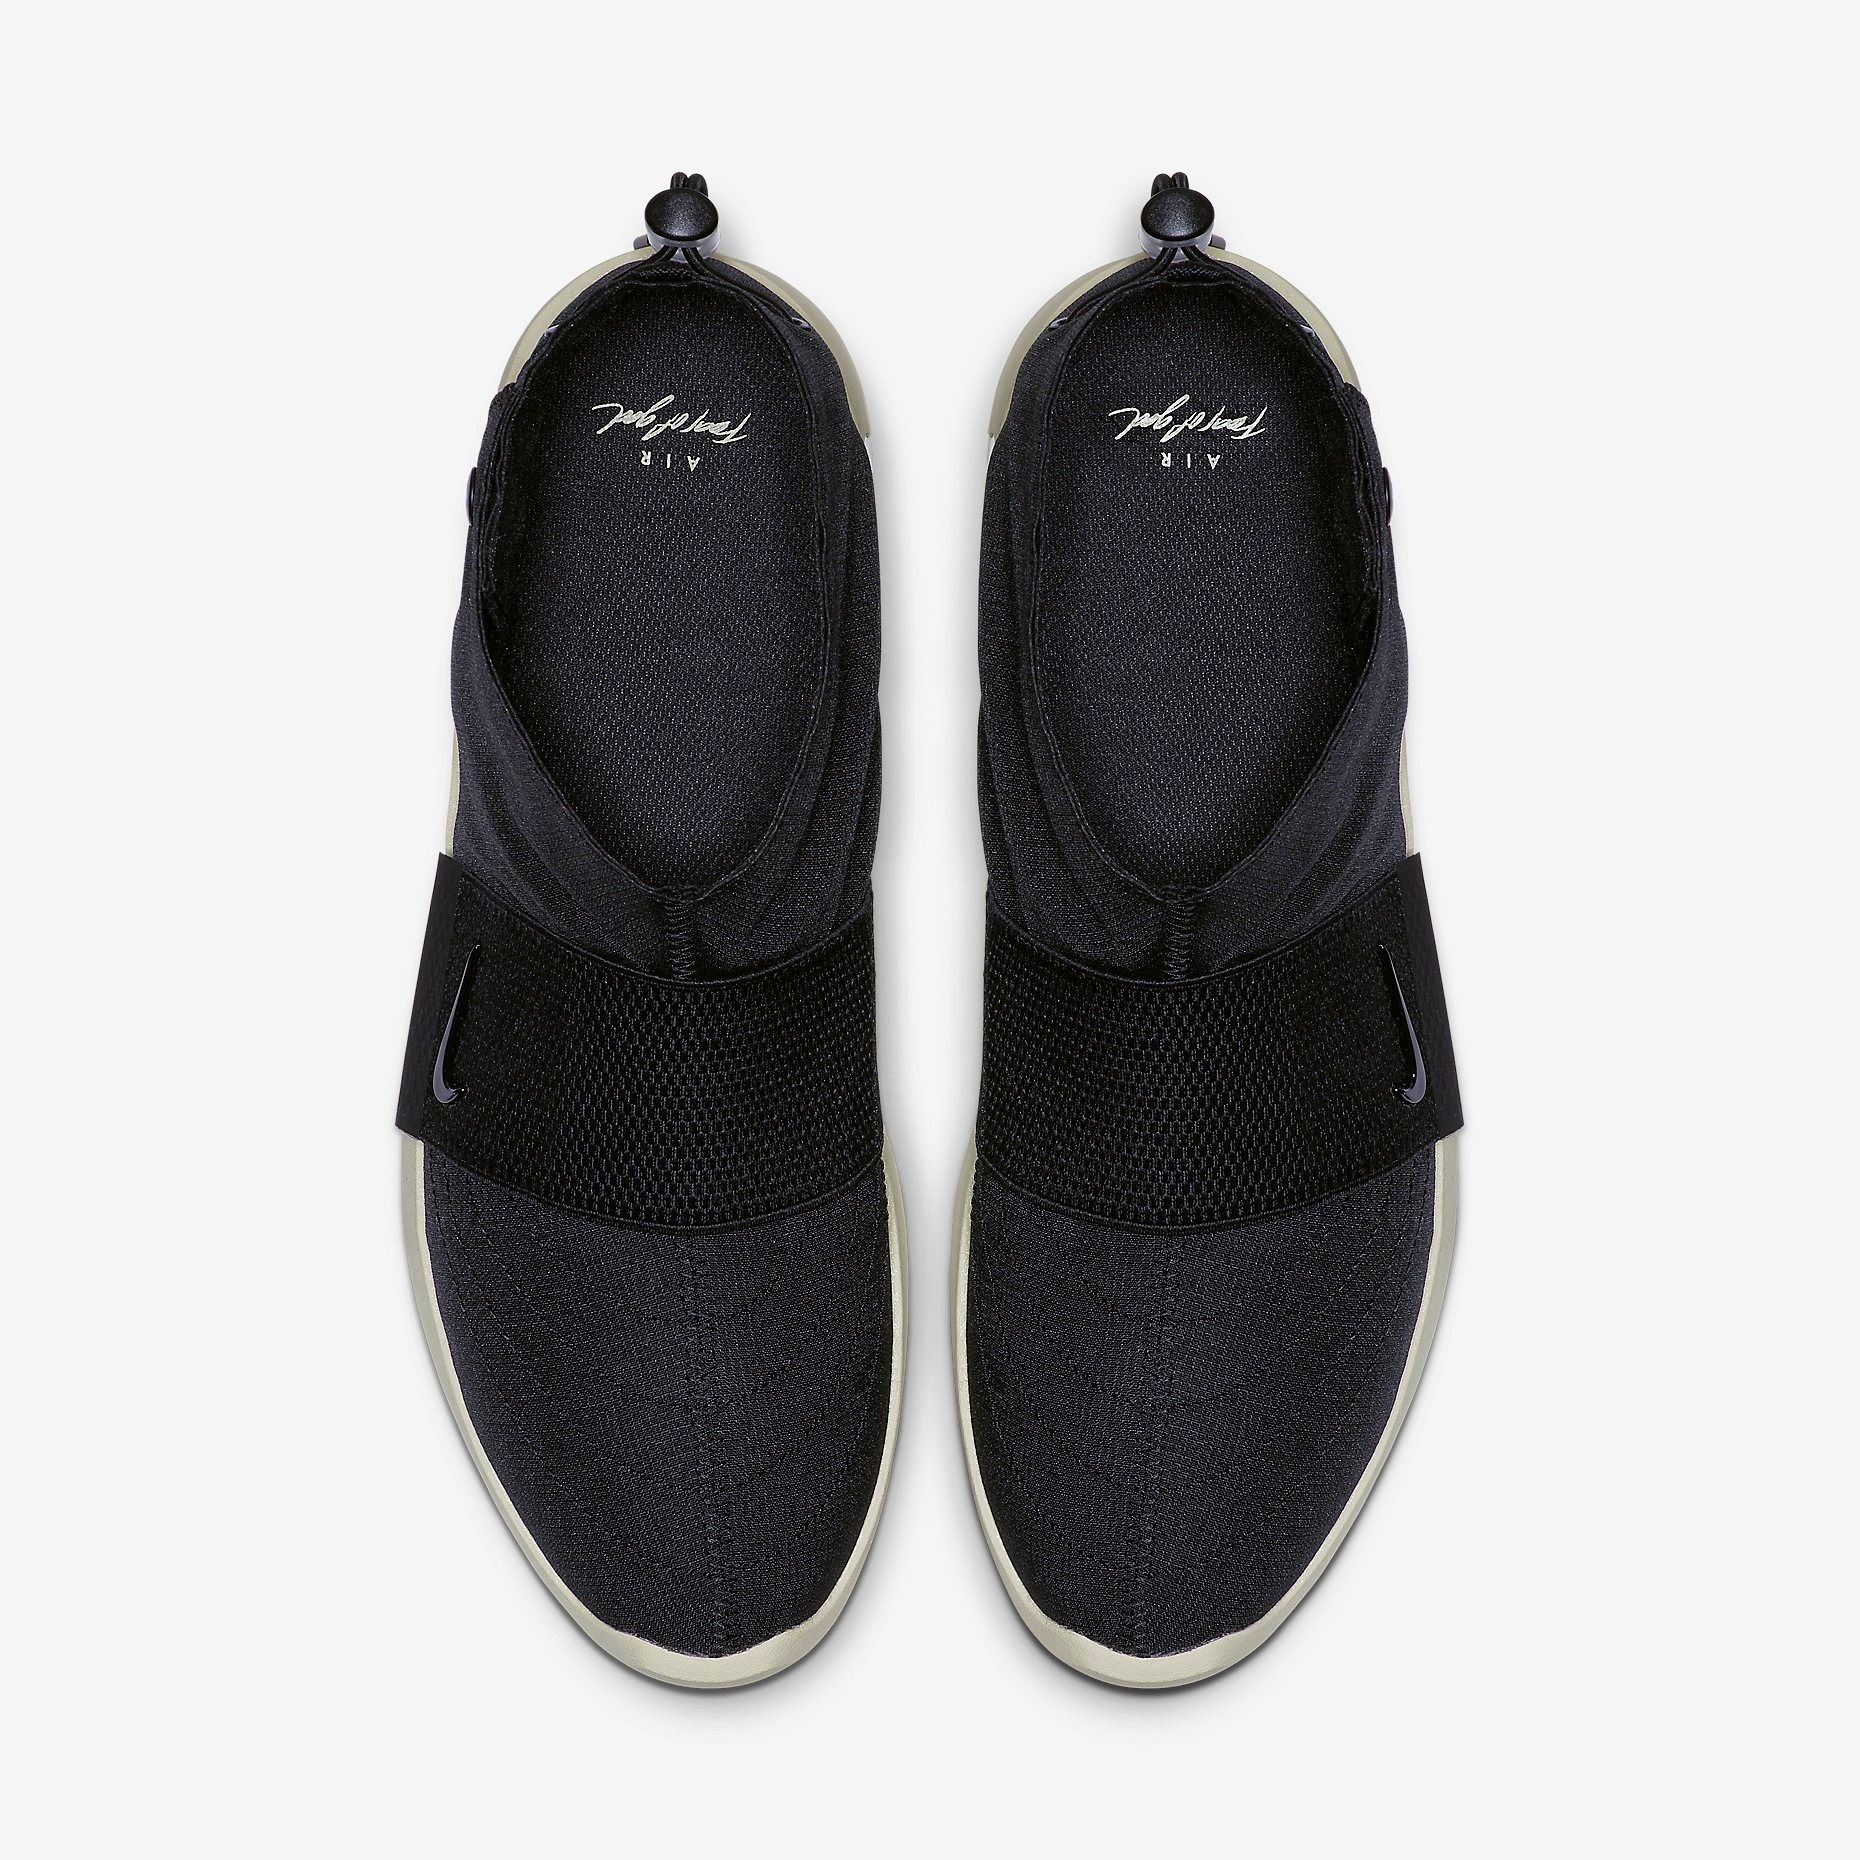 Fear of God x Nike Moccasin Black 2